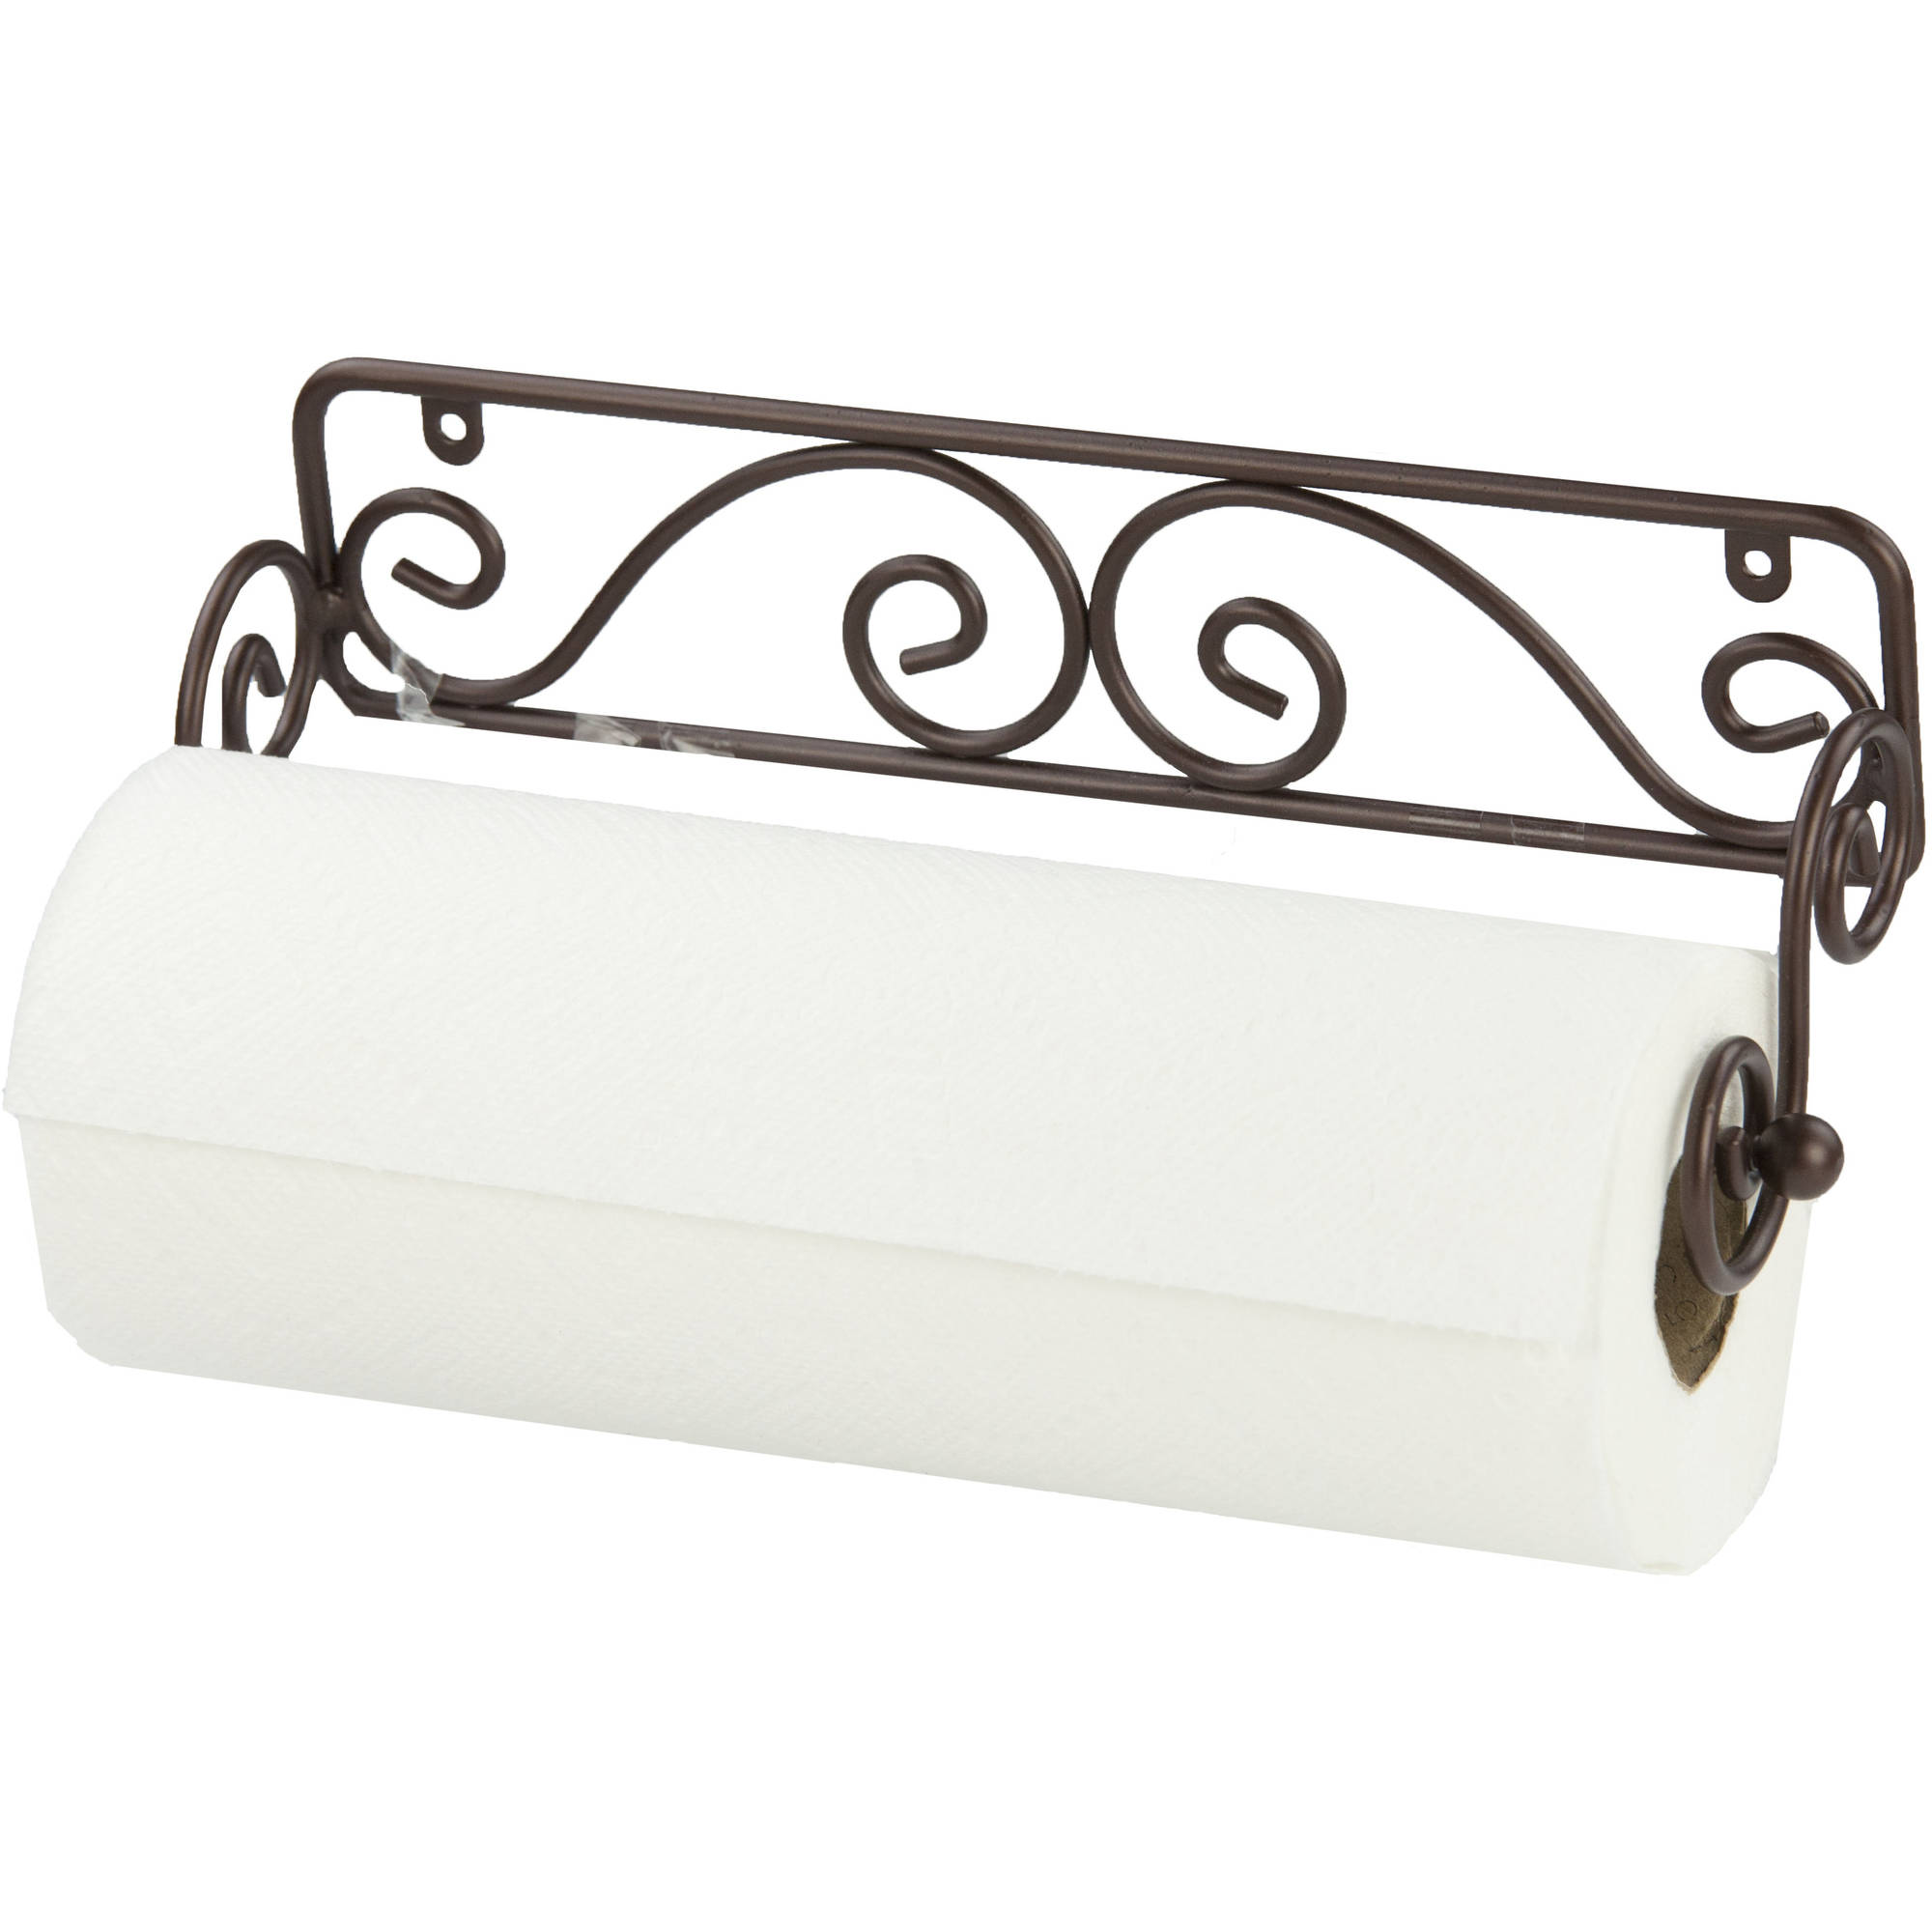 Home Basics Paper Towel Holder, Wall Mounted, Bronze